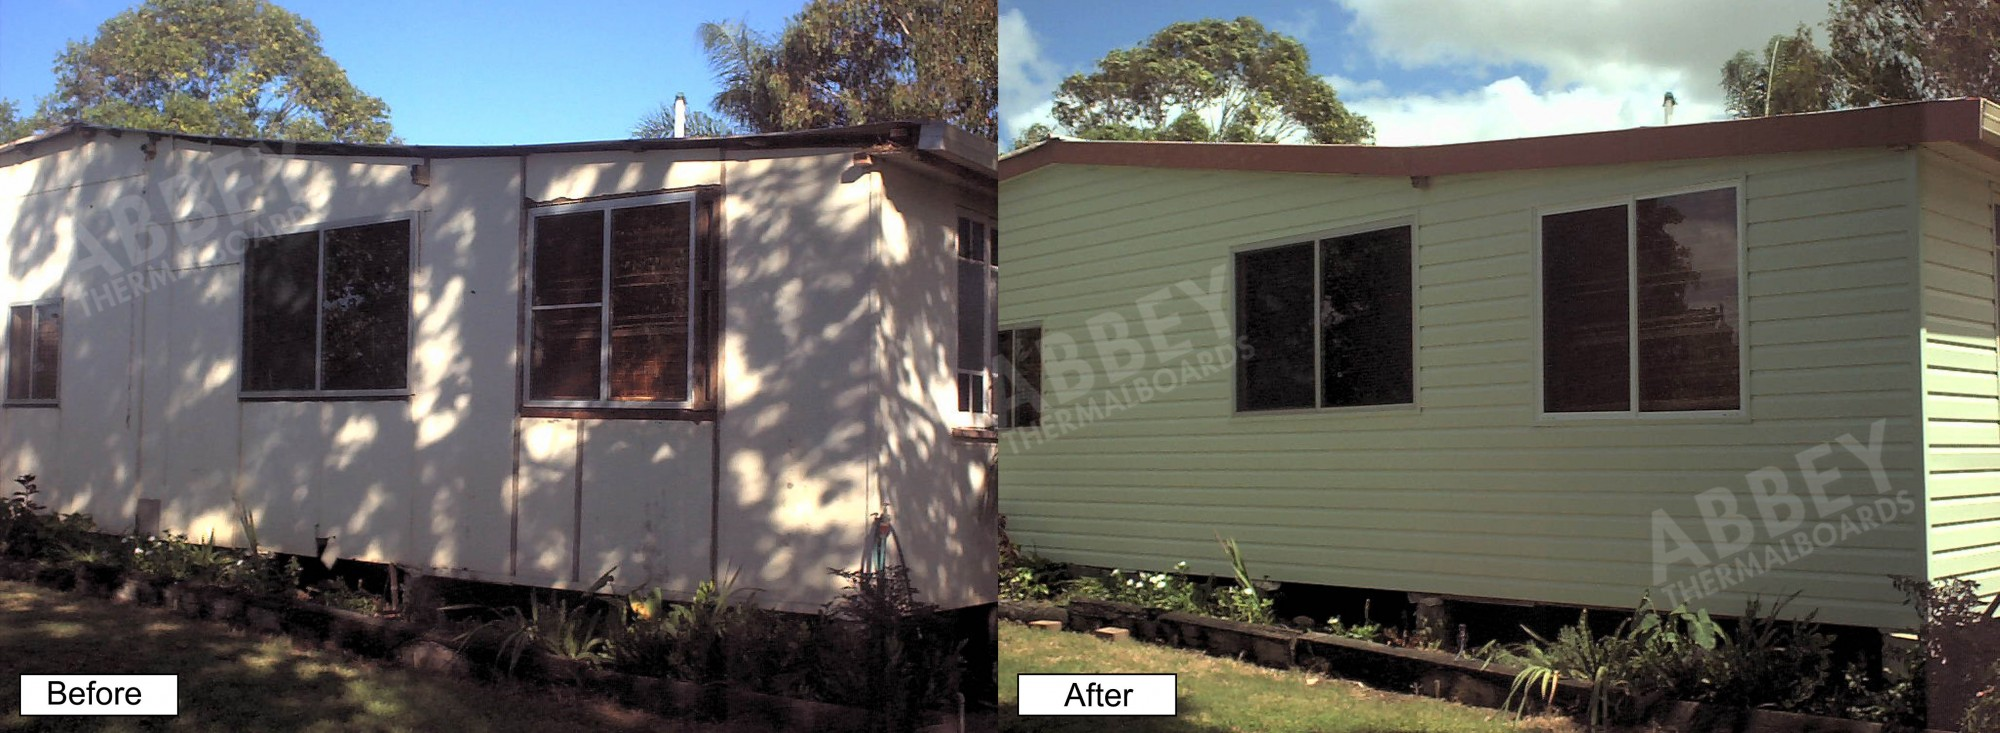 House cladding completed showing before and after.